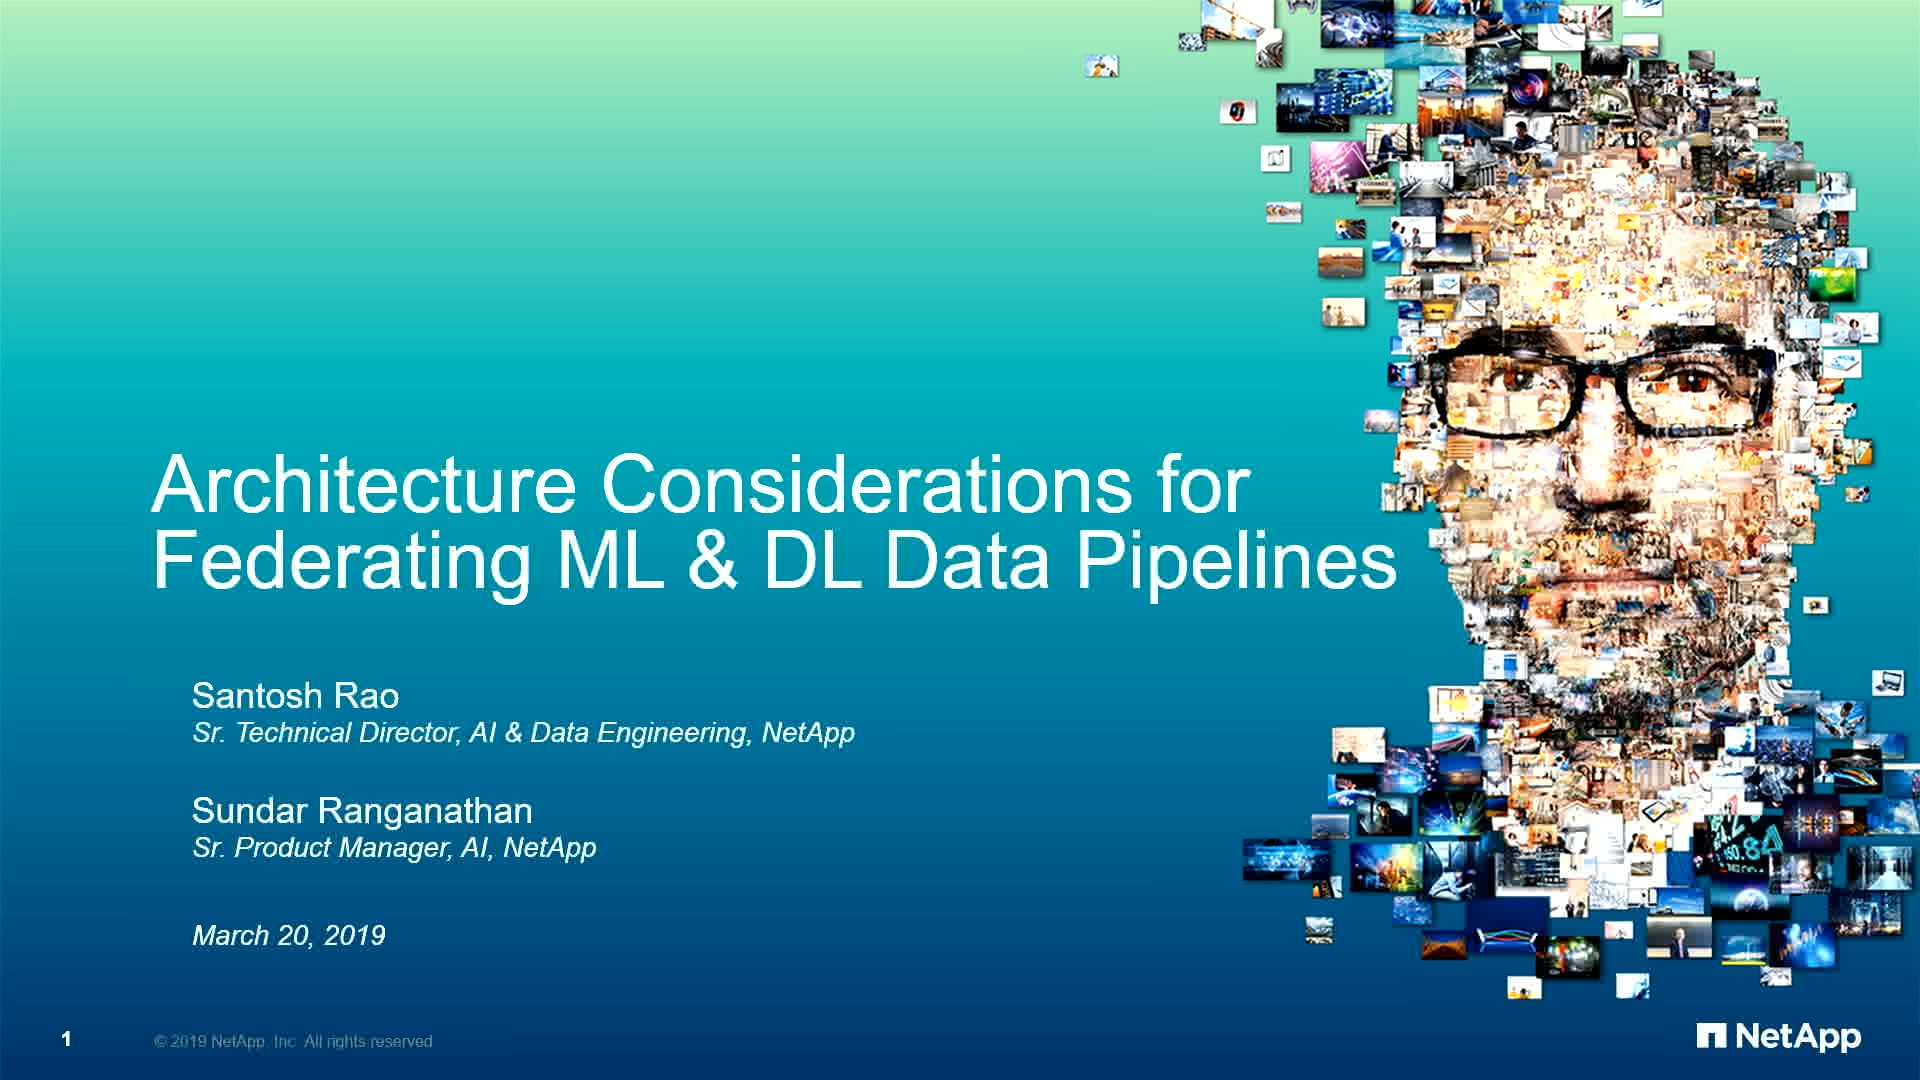 Dl Naar Ml Gtc Silicon Valley 2019 Architecture Considerations For